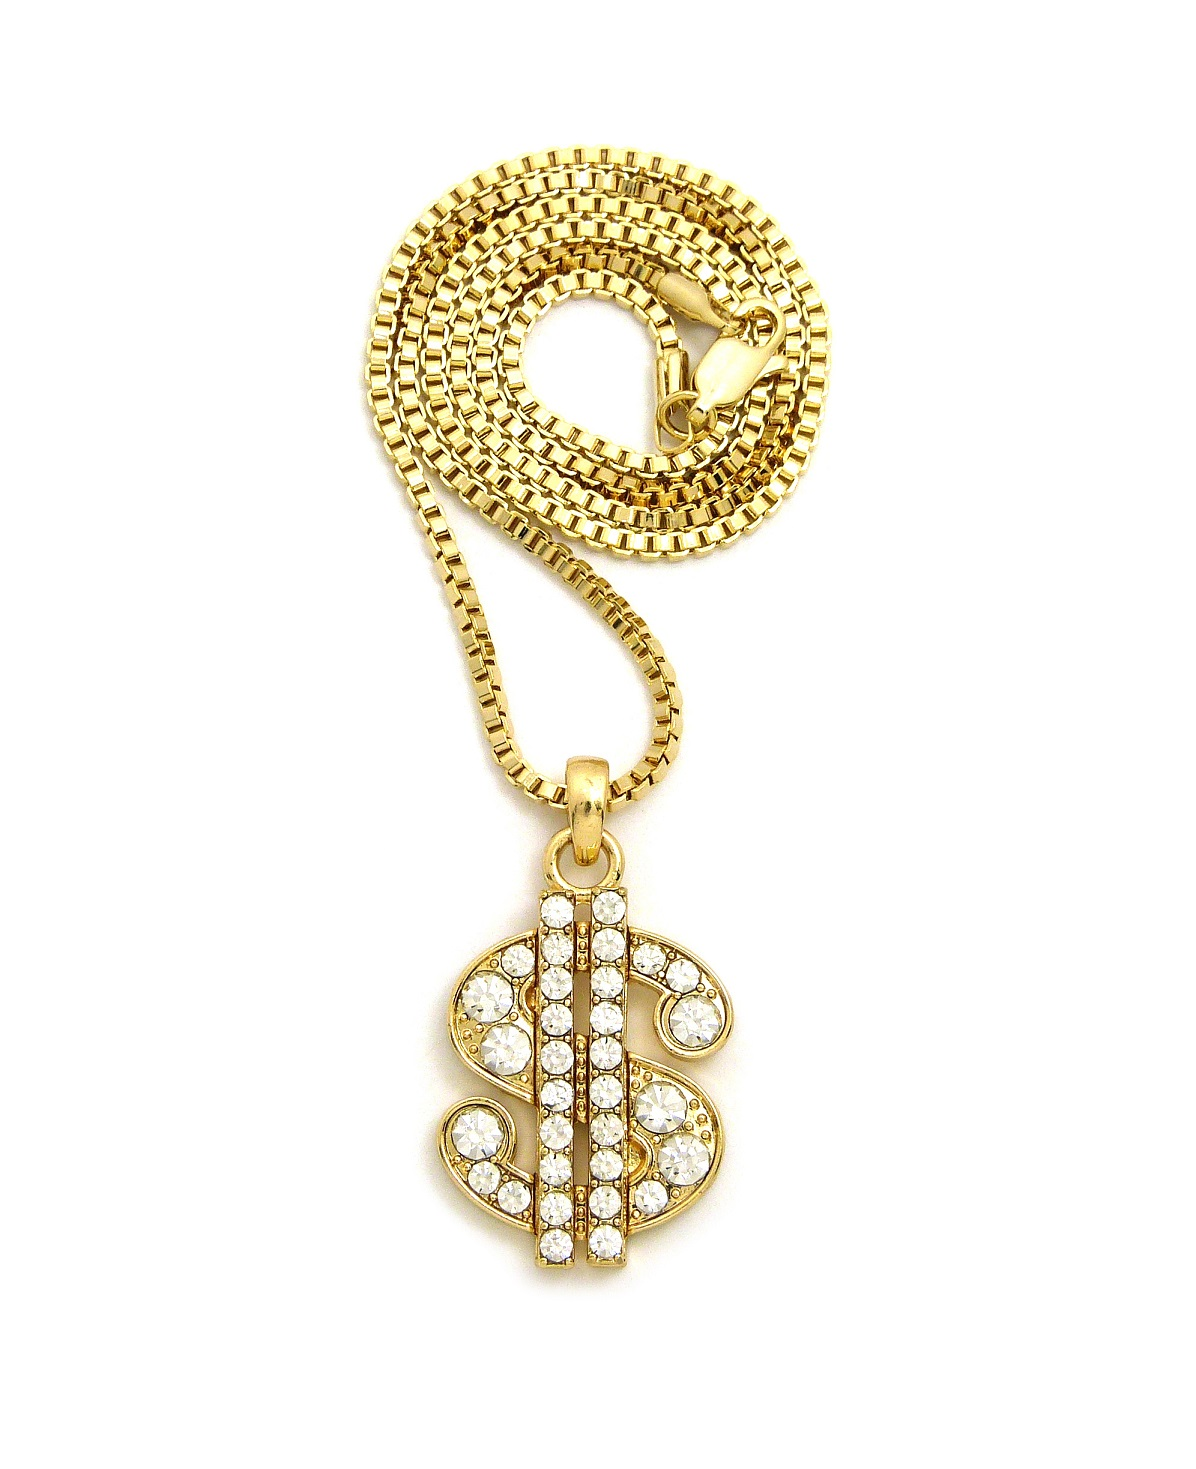 Stone Stud Dollar Sign Micro Pendant with 2mm 24 Box Chain Necklace Gold-Tone